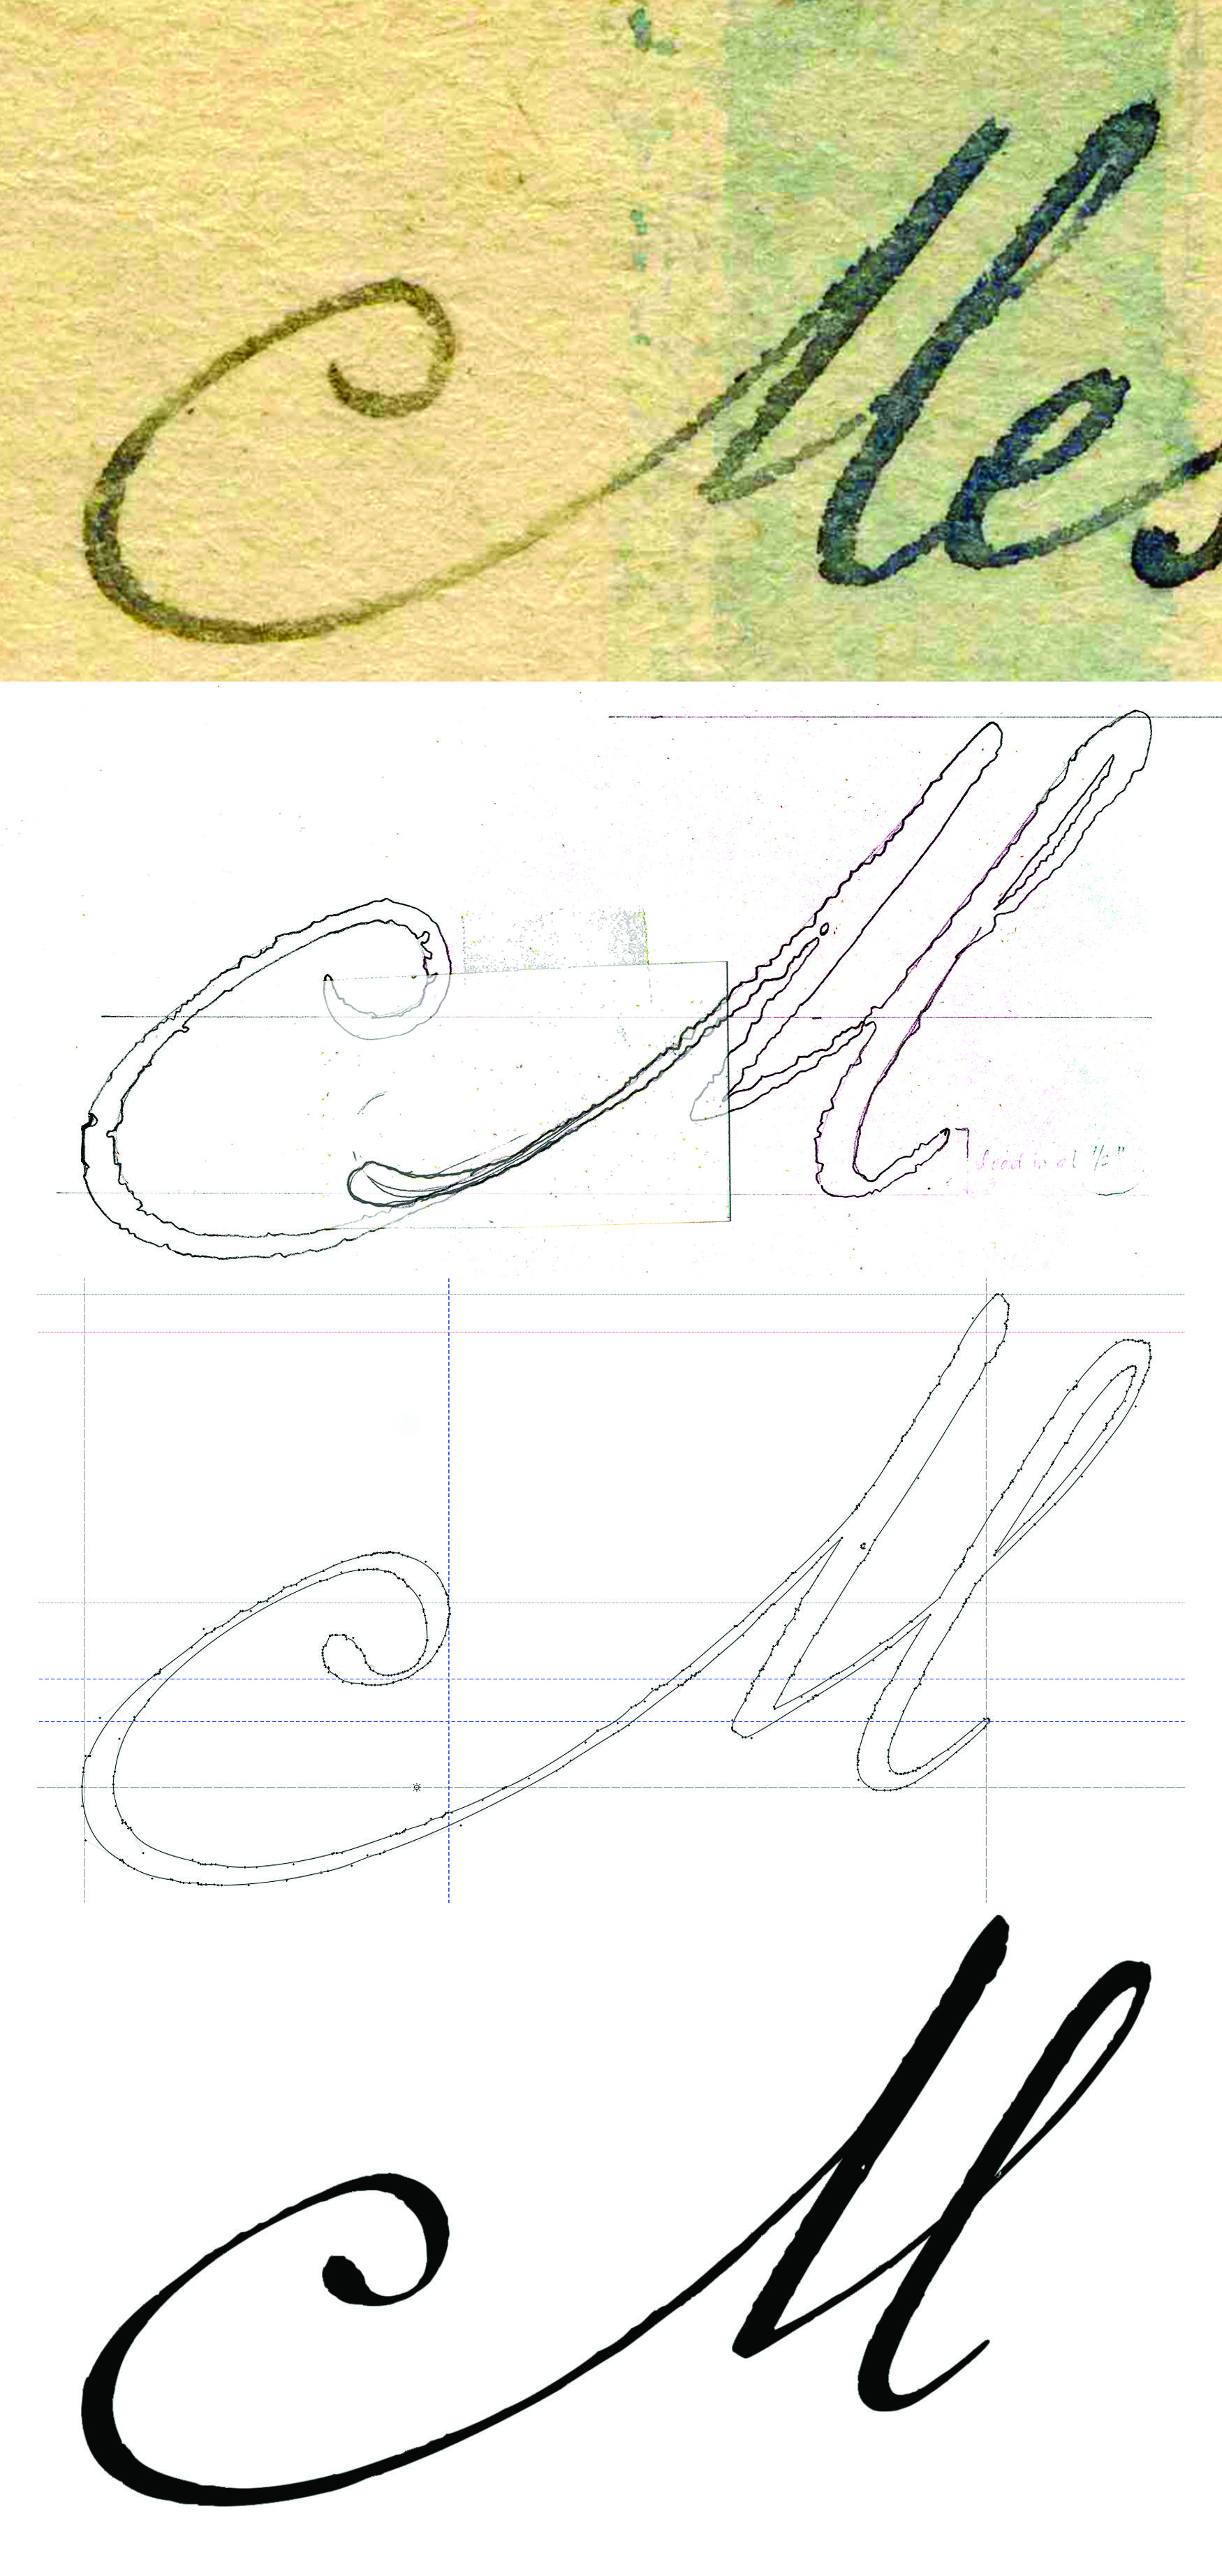 Sequence Of Images Showing The Initial Sketch To The Final